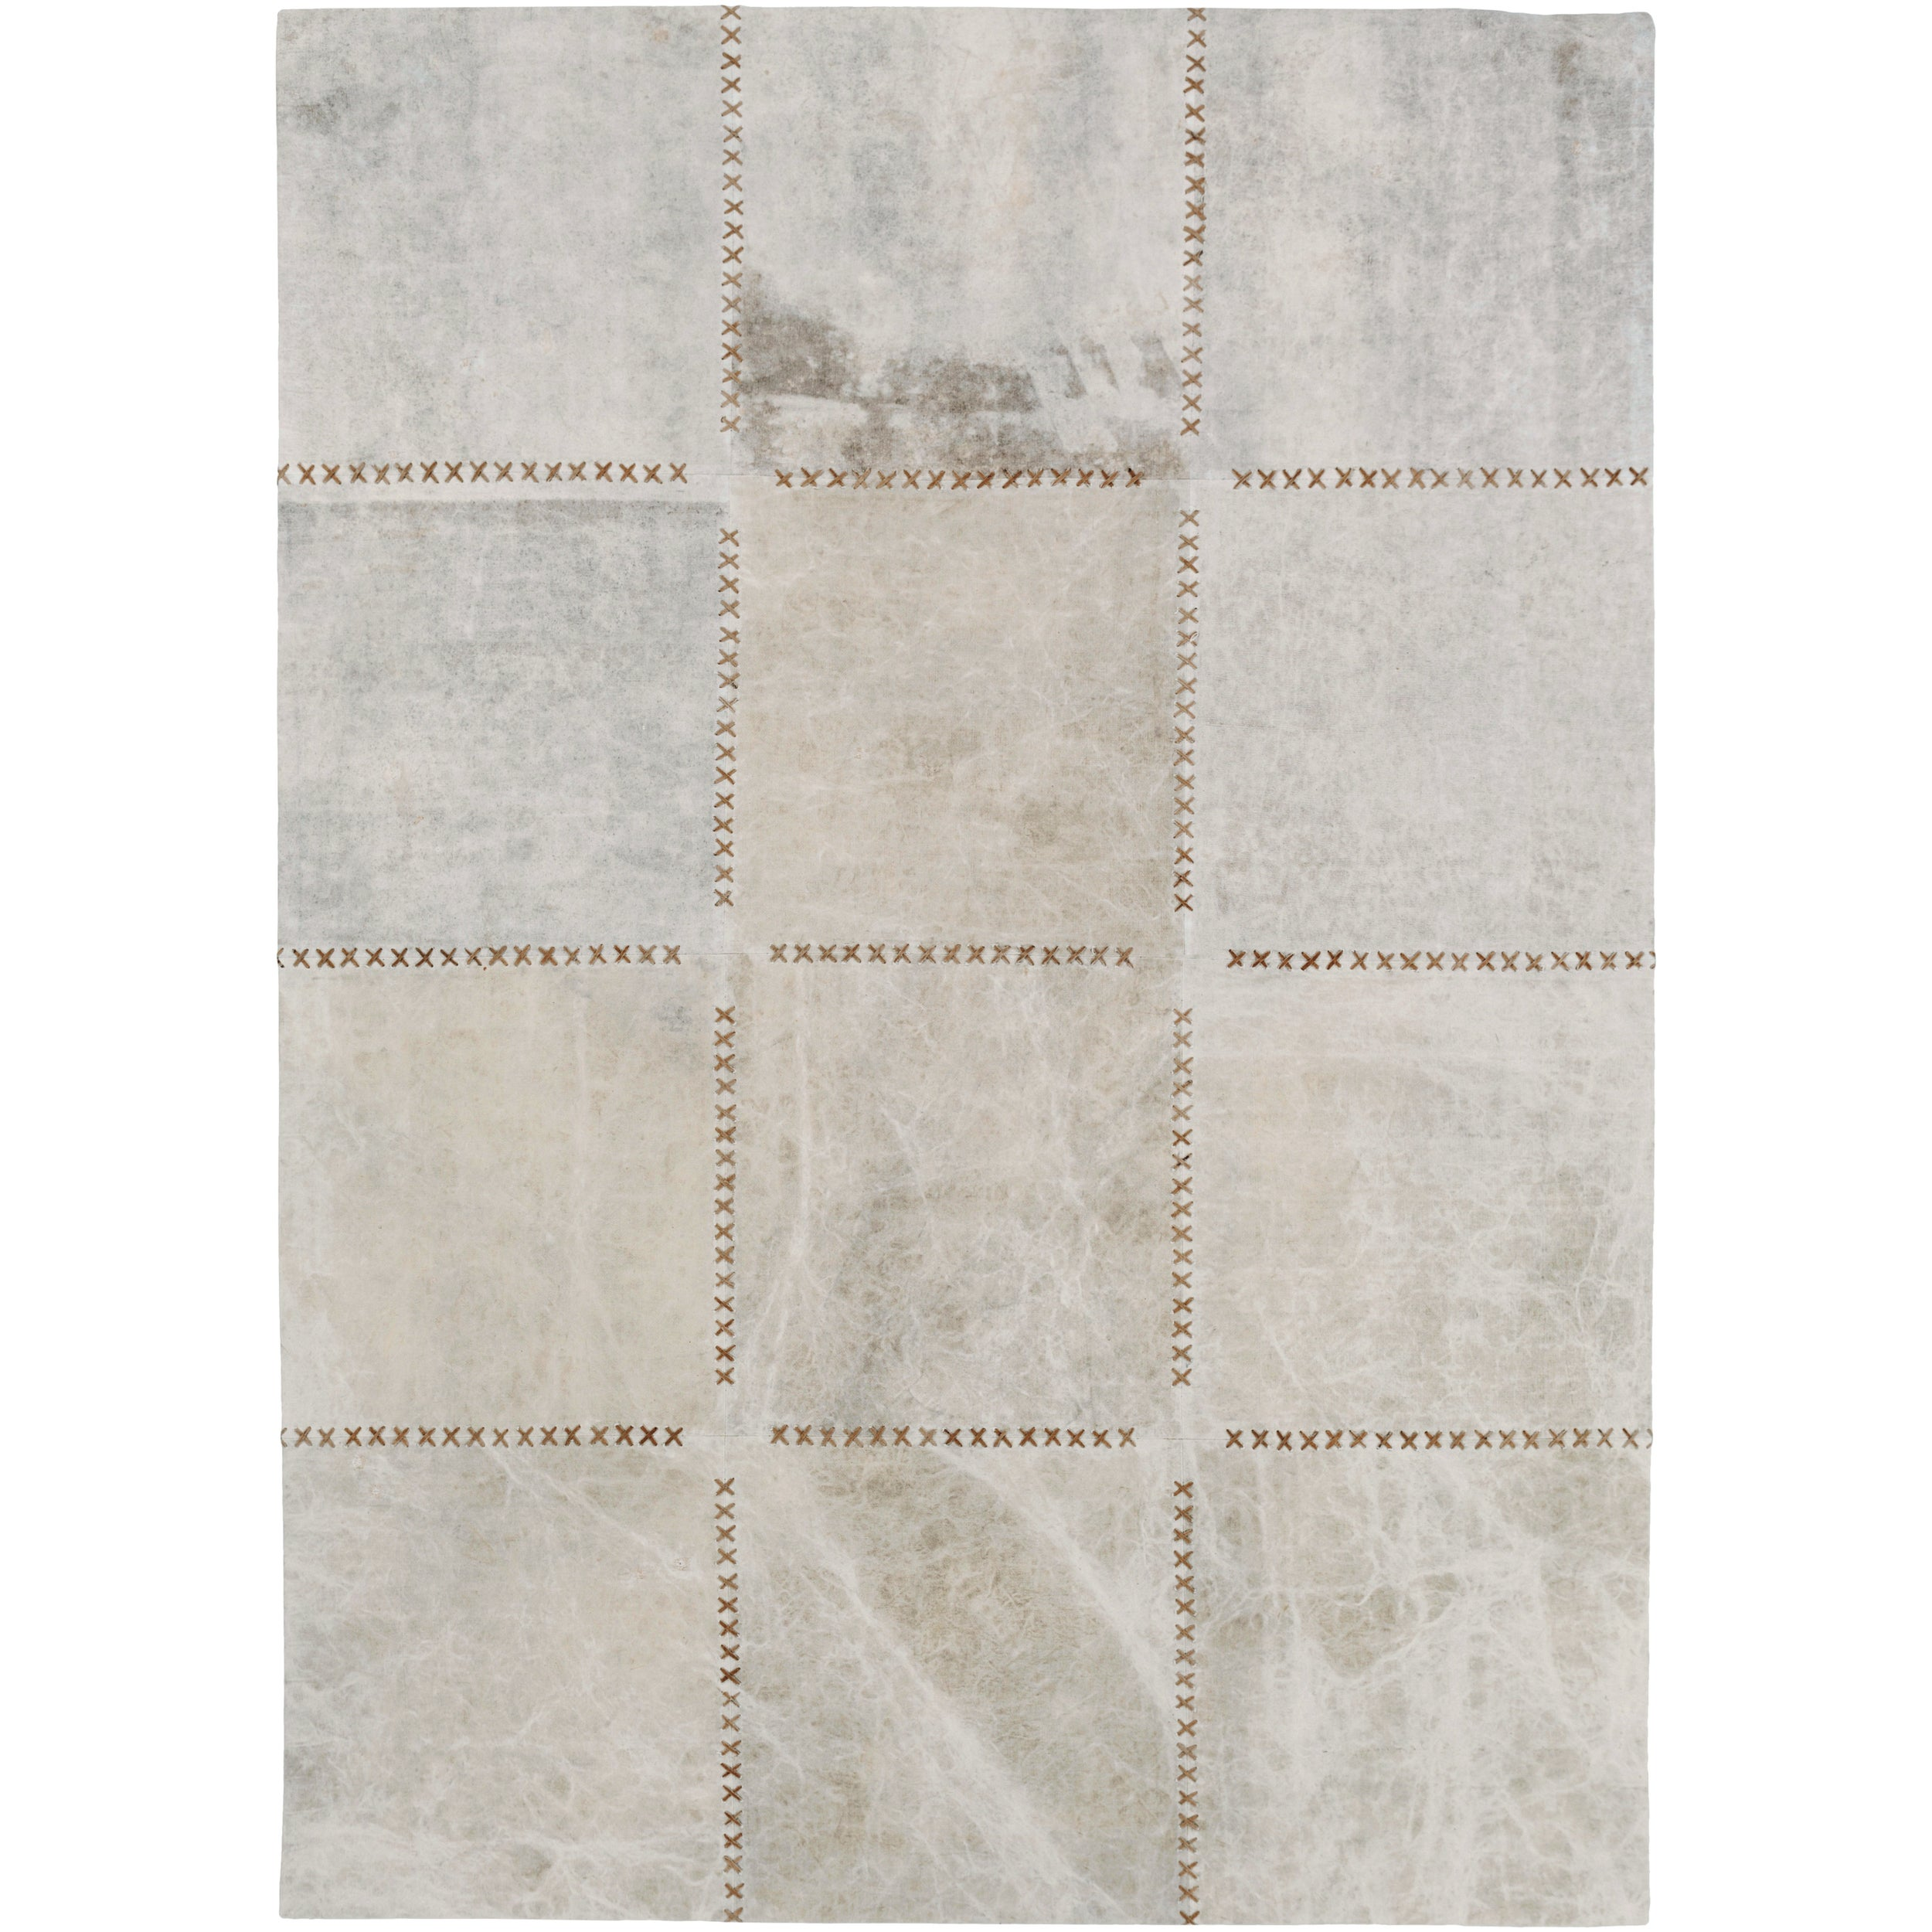 SURYA Hand-Crafted Thirsk Crosshatched Indoor Cotton Rug ...